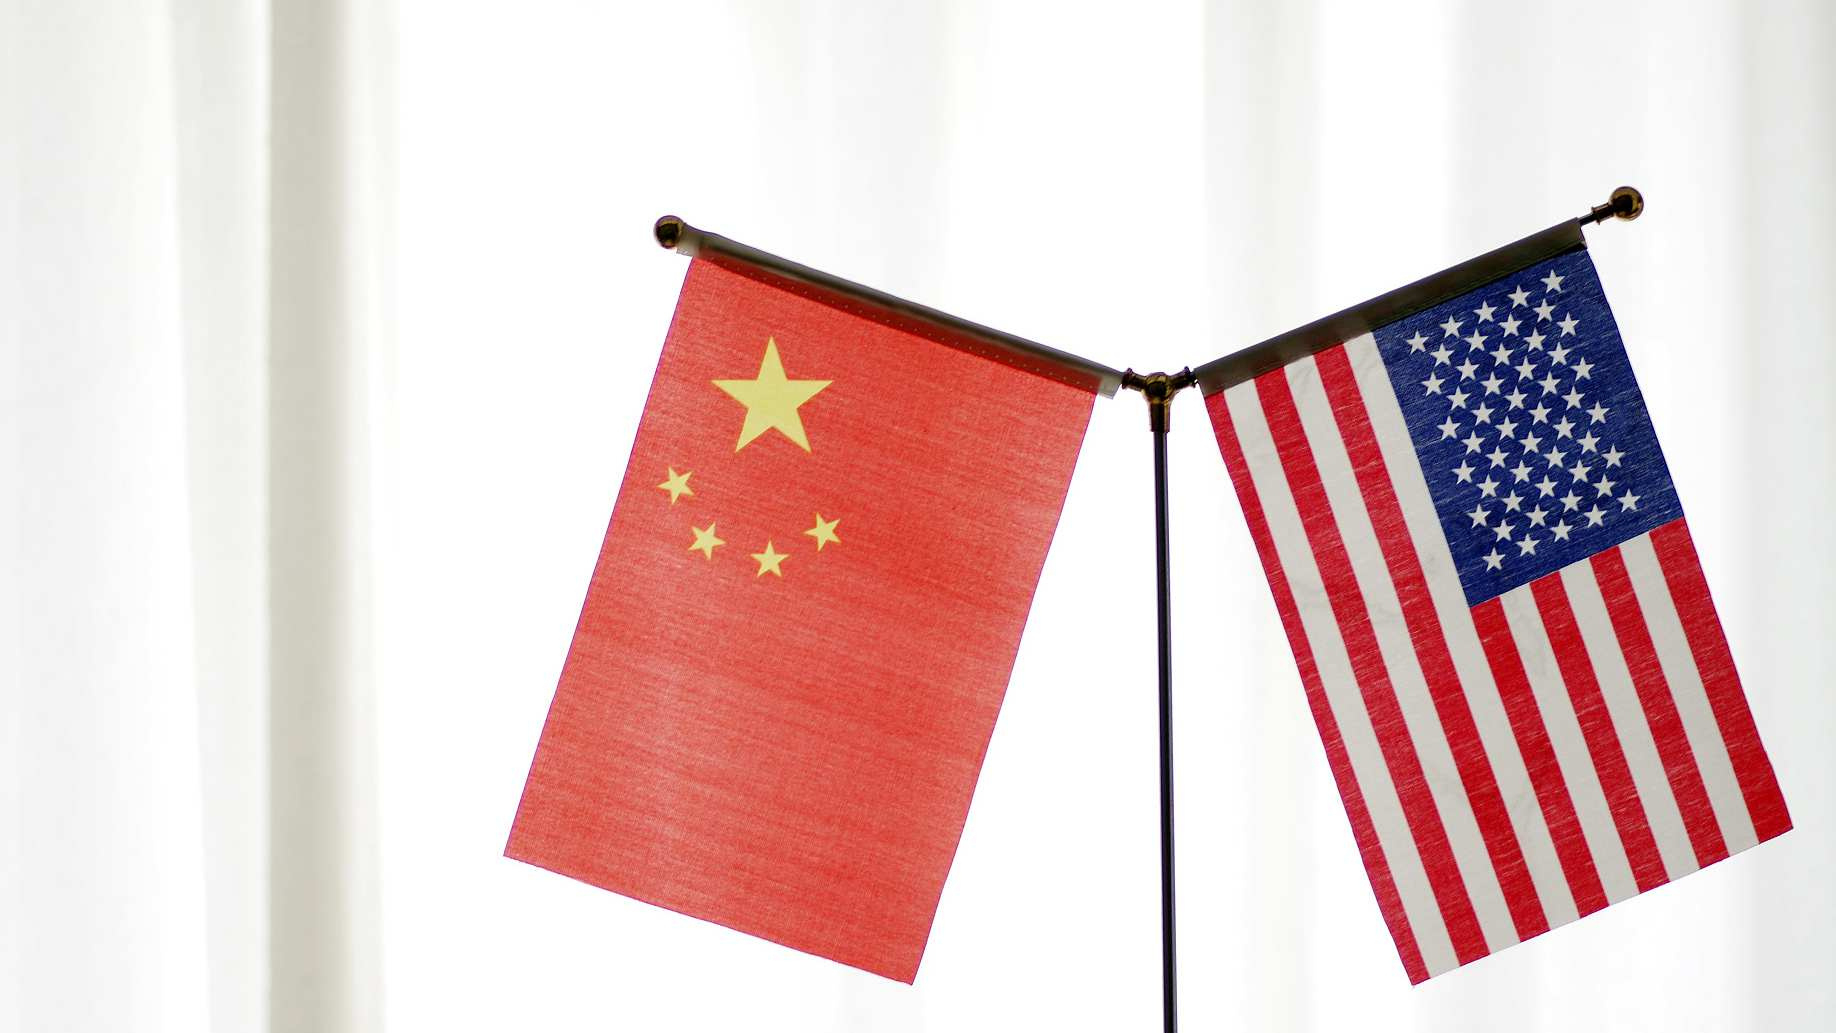 Beijing, Washington to have in-depth trade talks